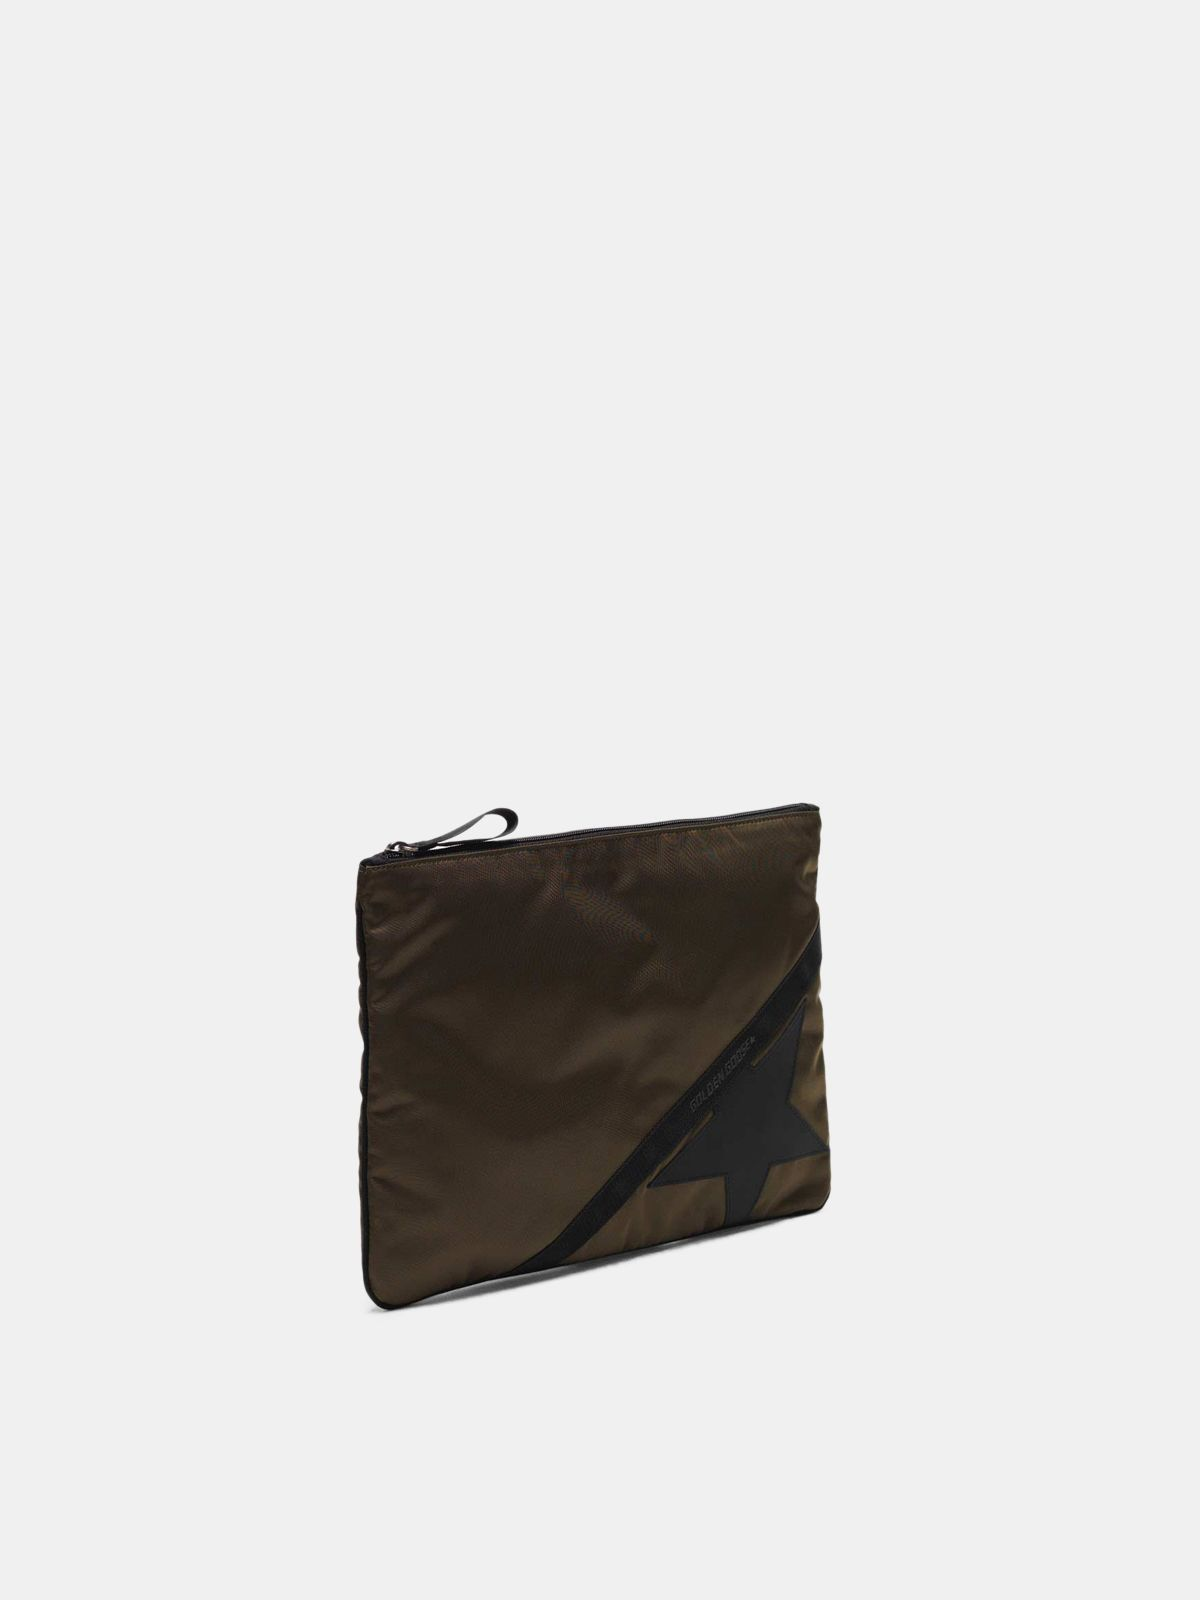 Golden Goose - Large military green nylon Journey pouch in